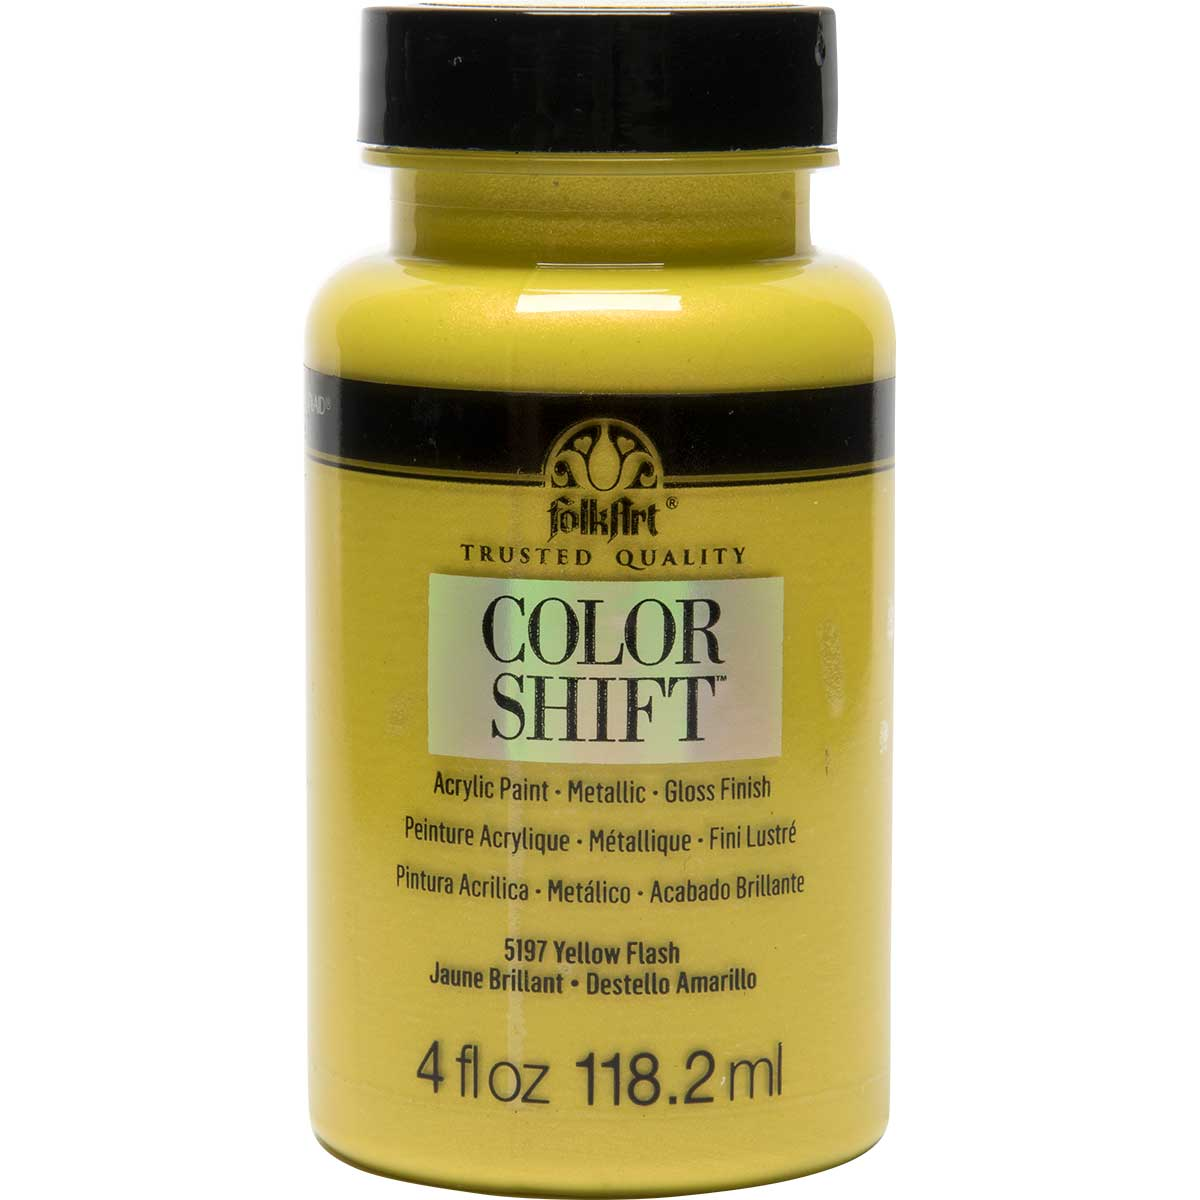 FolkArt ® Color Shift™ Acrylic Paint - Yellow Flash, 4 oz.